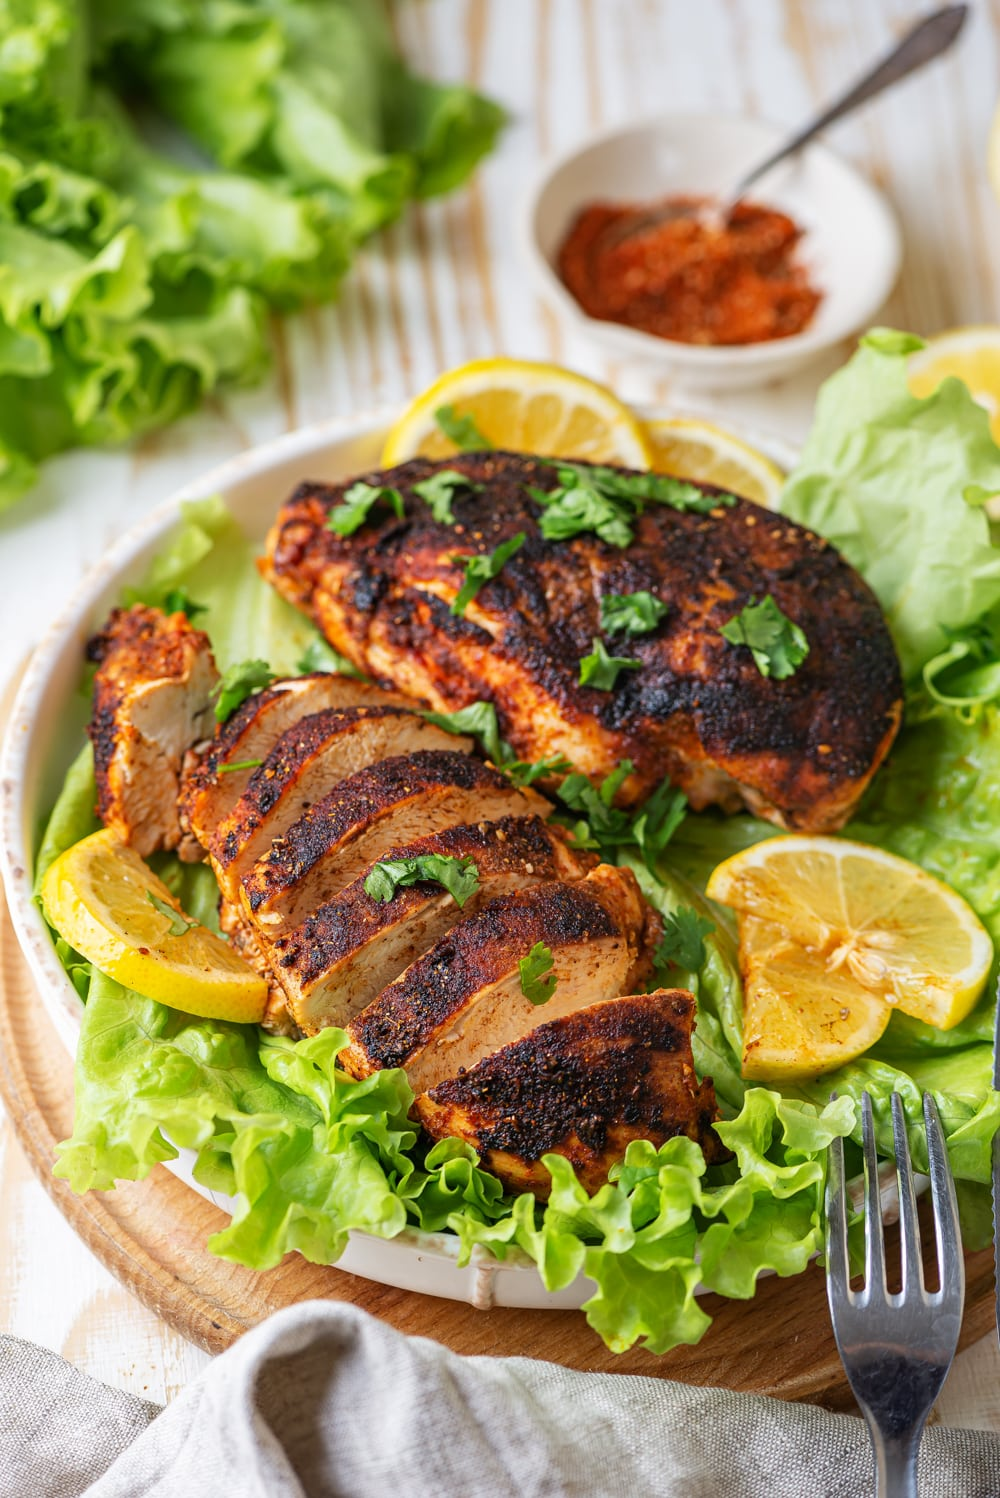 A white plate of one whole piece of blackened chicken and one sliced piece of blackened chicken set on top of leafy green lettuce. There are a few lemon slices on the plate with a fork at the edge of the bottom of the plate. A small white bowl of seasonings is behind the plate.